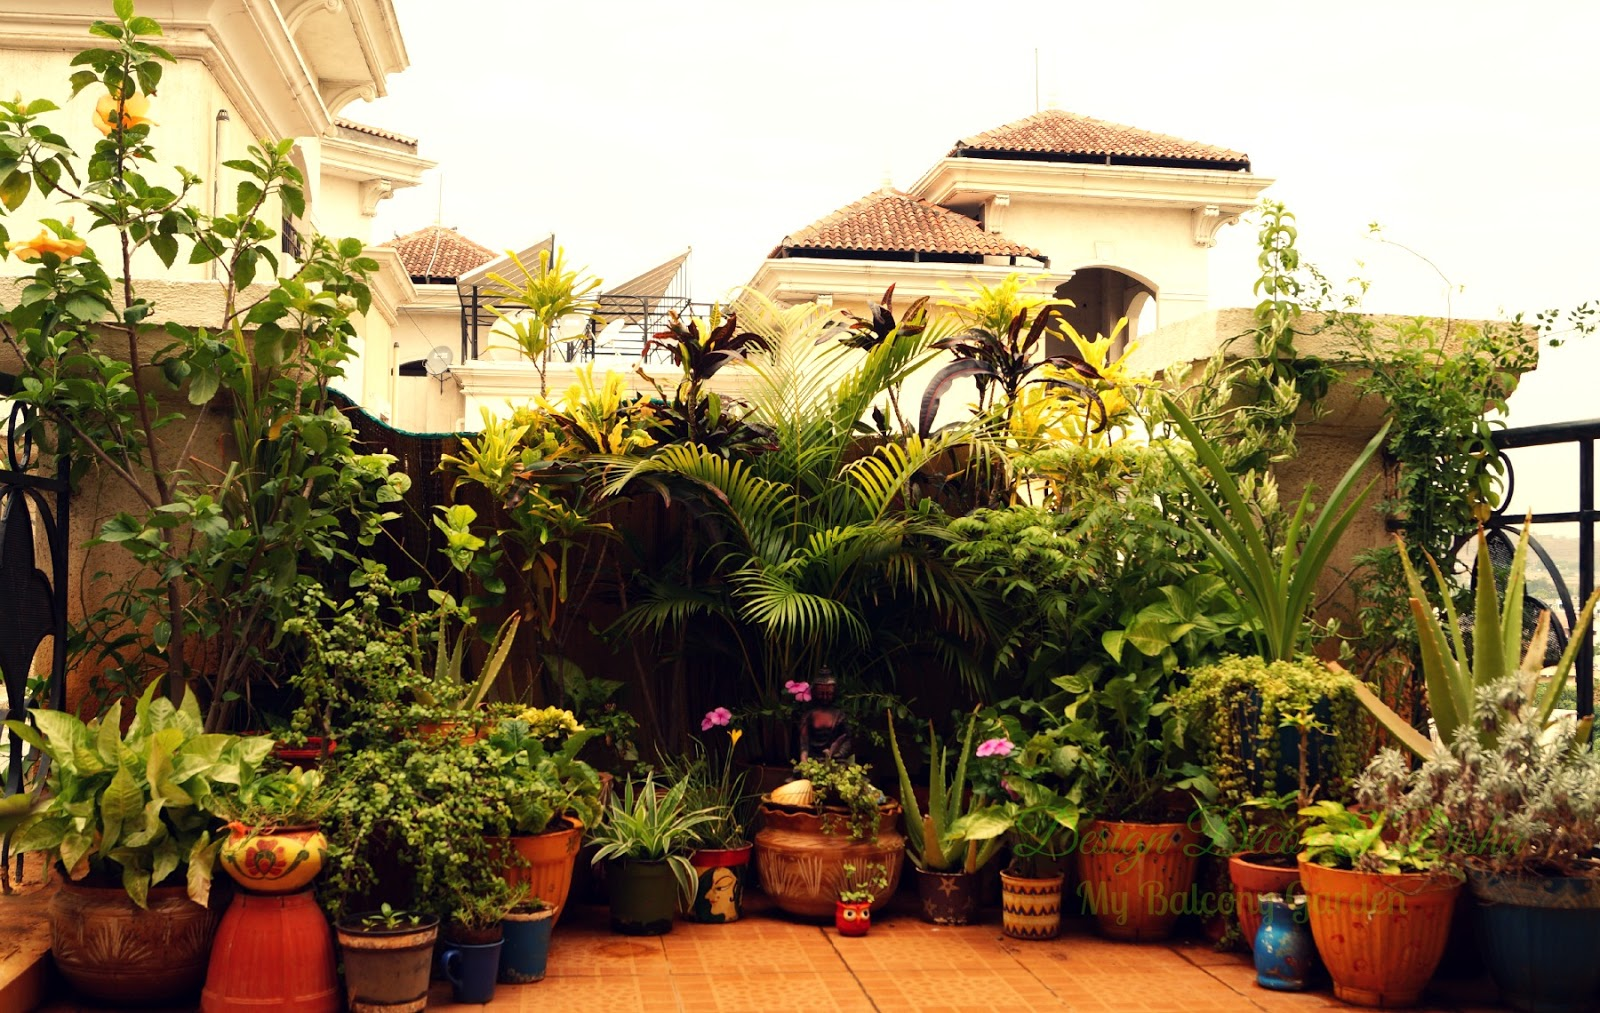 Design decor disha an indian design decor blog my for Balcony garden